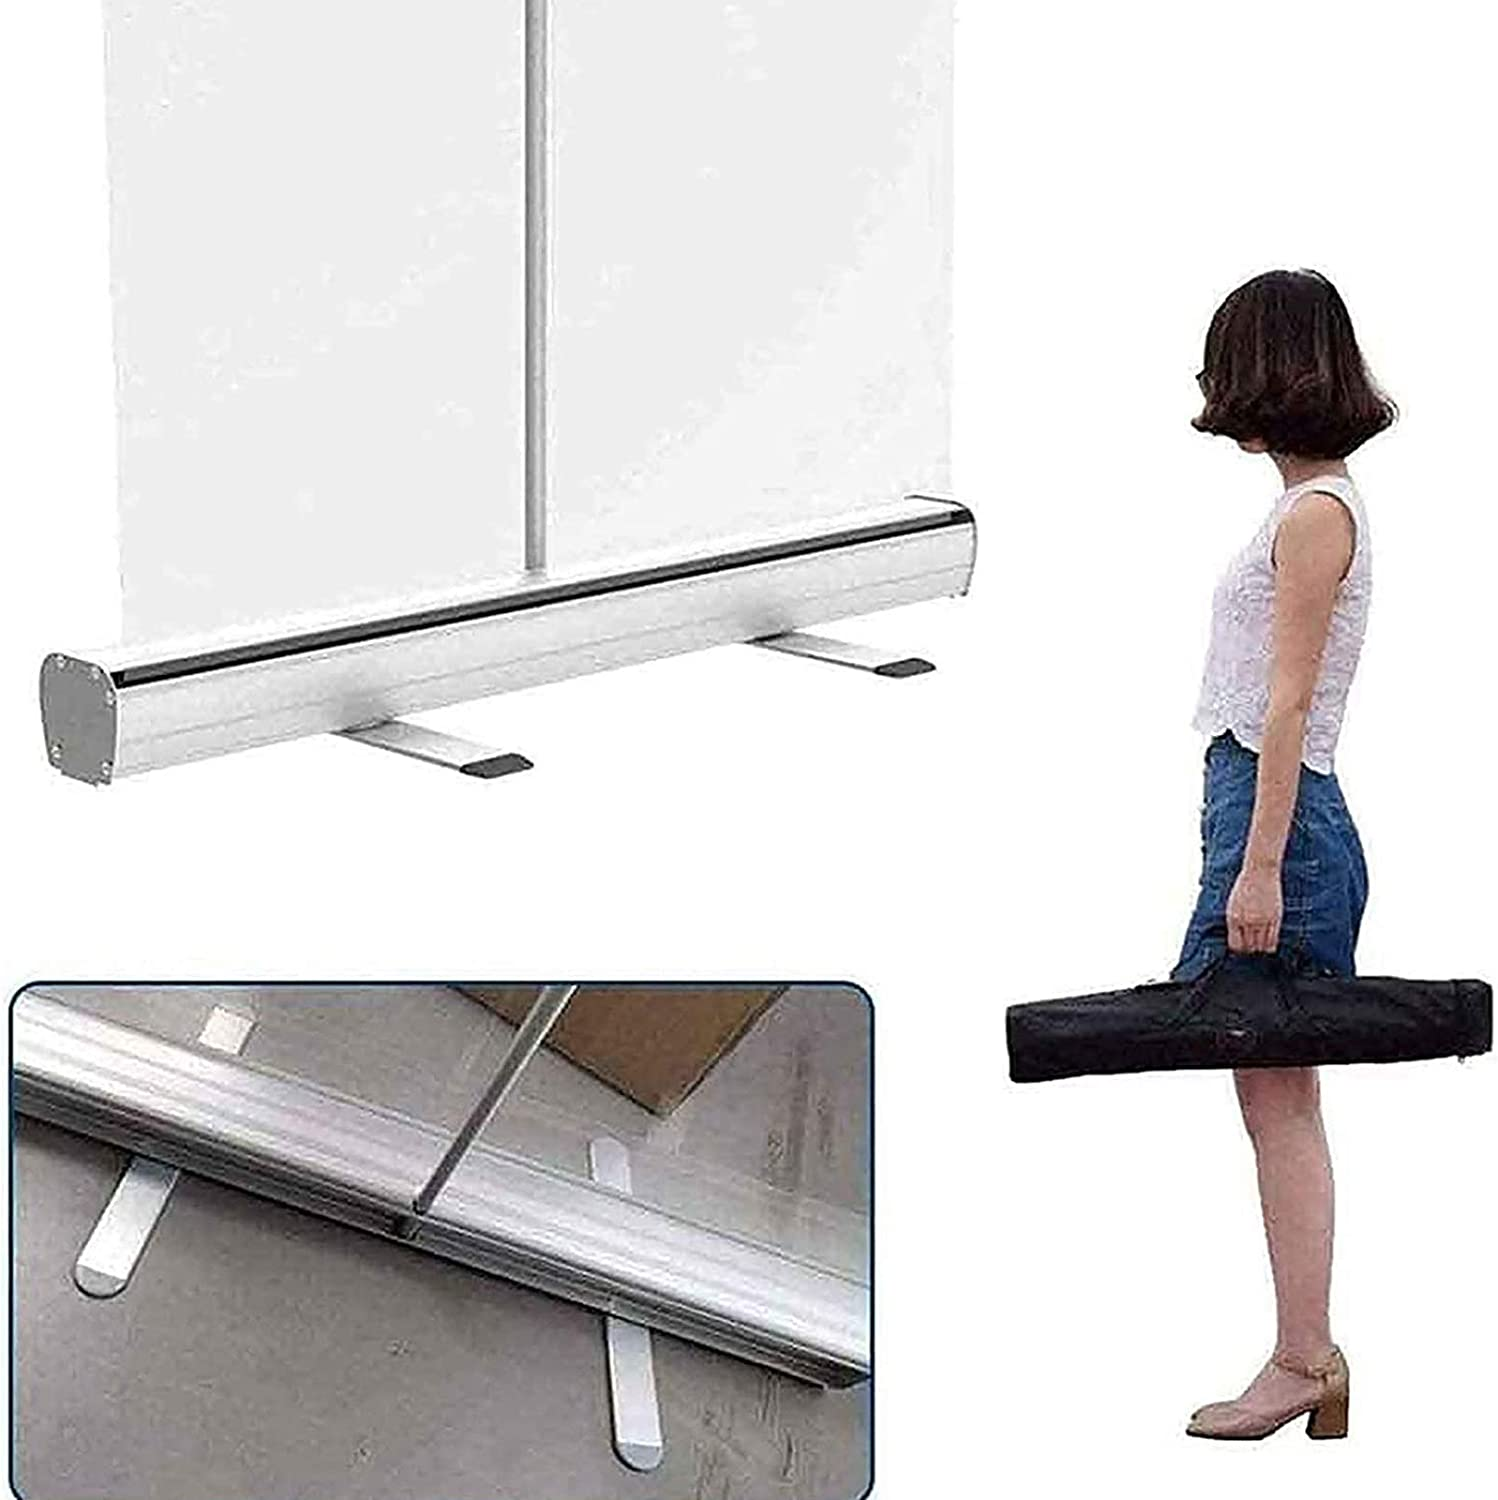 Full Tarp with Steppy Retractable Stand Free Standing Isolation Barrier RZB Floor Standing Sneeze Guard Size : 80180cm Clear Film Protective Shield for Cafes